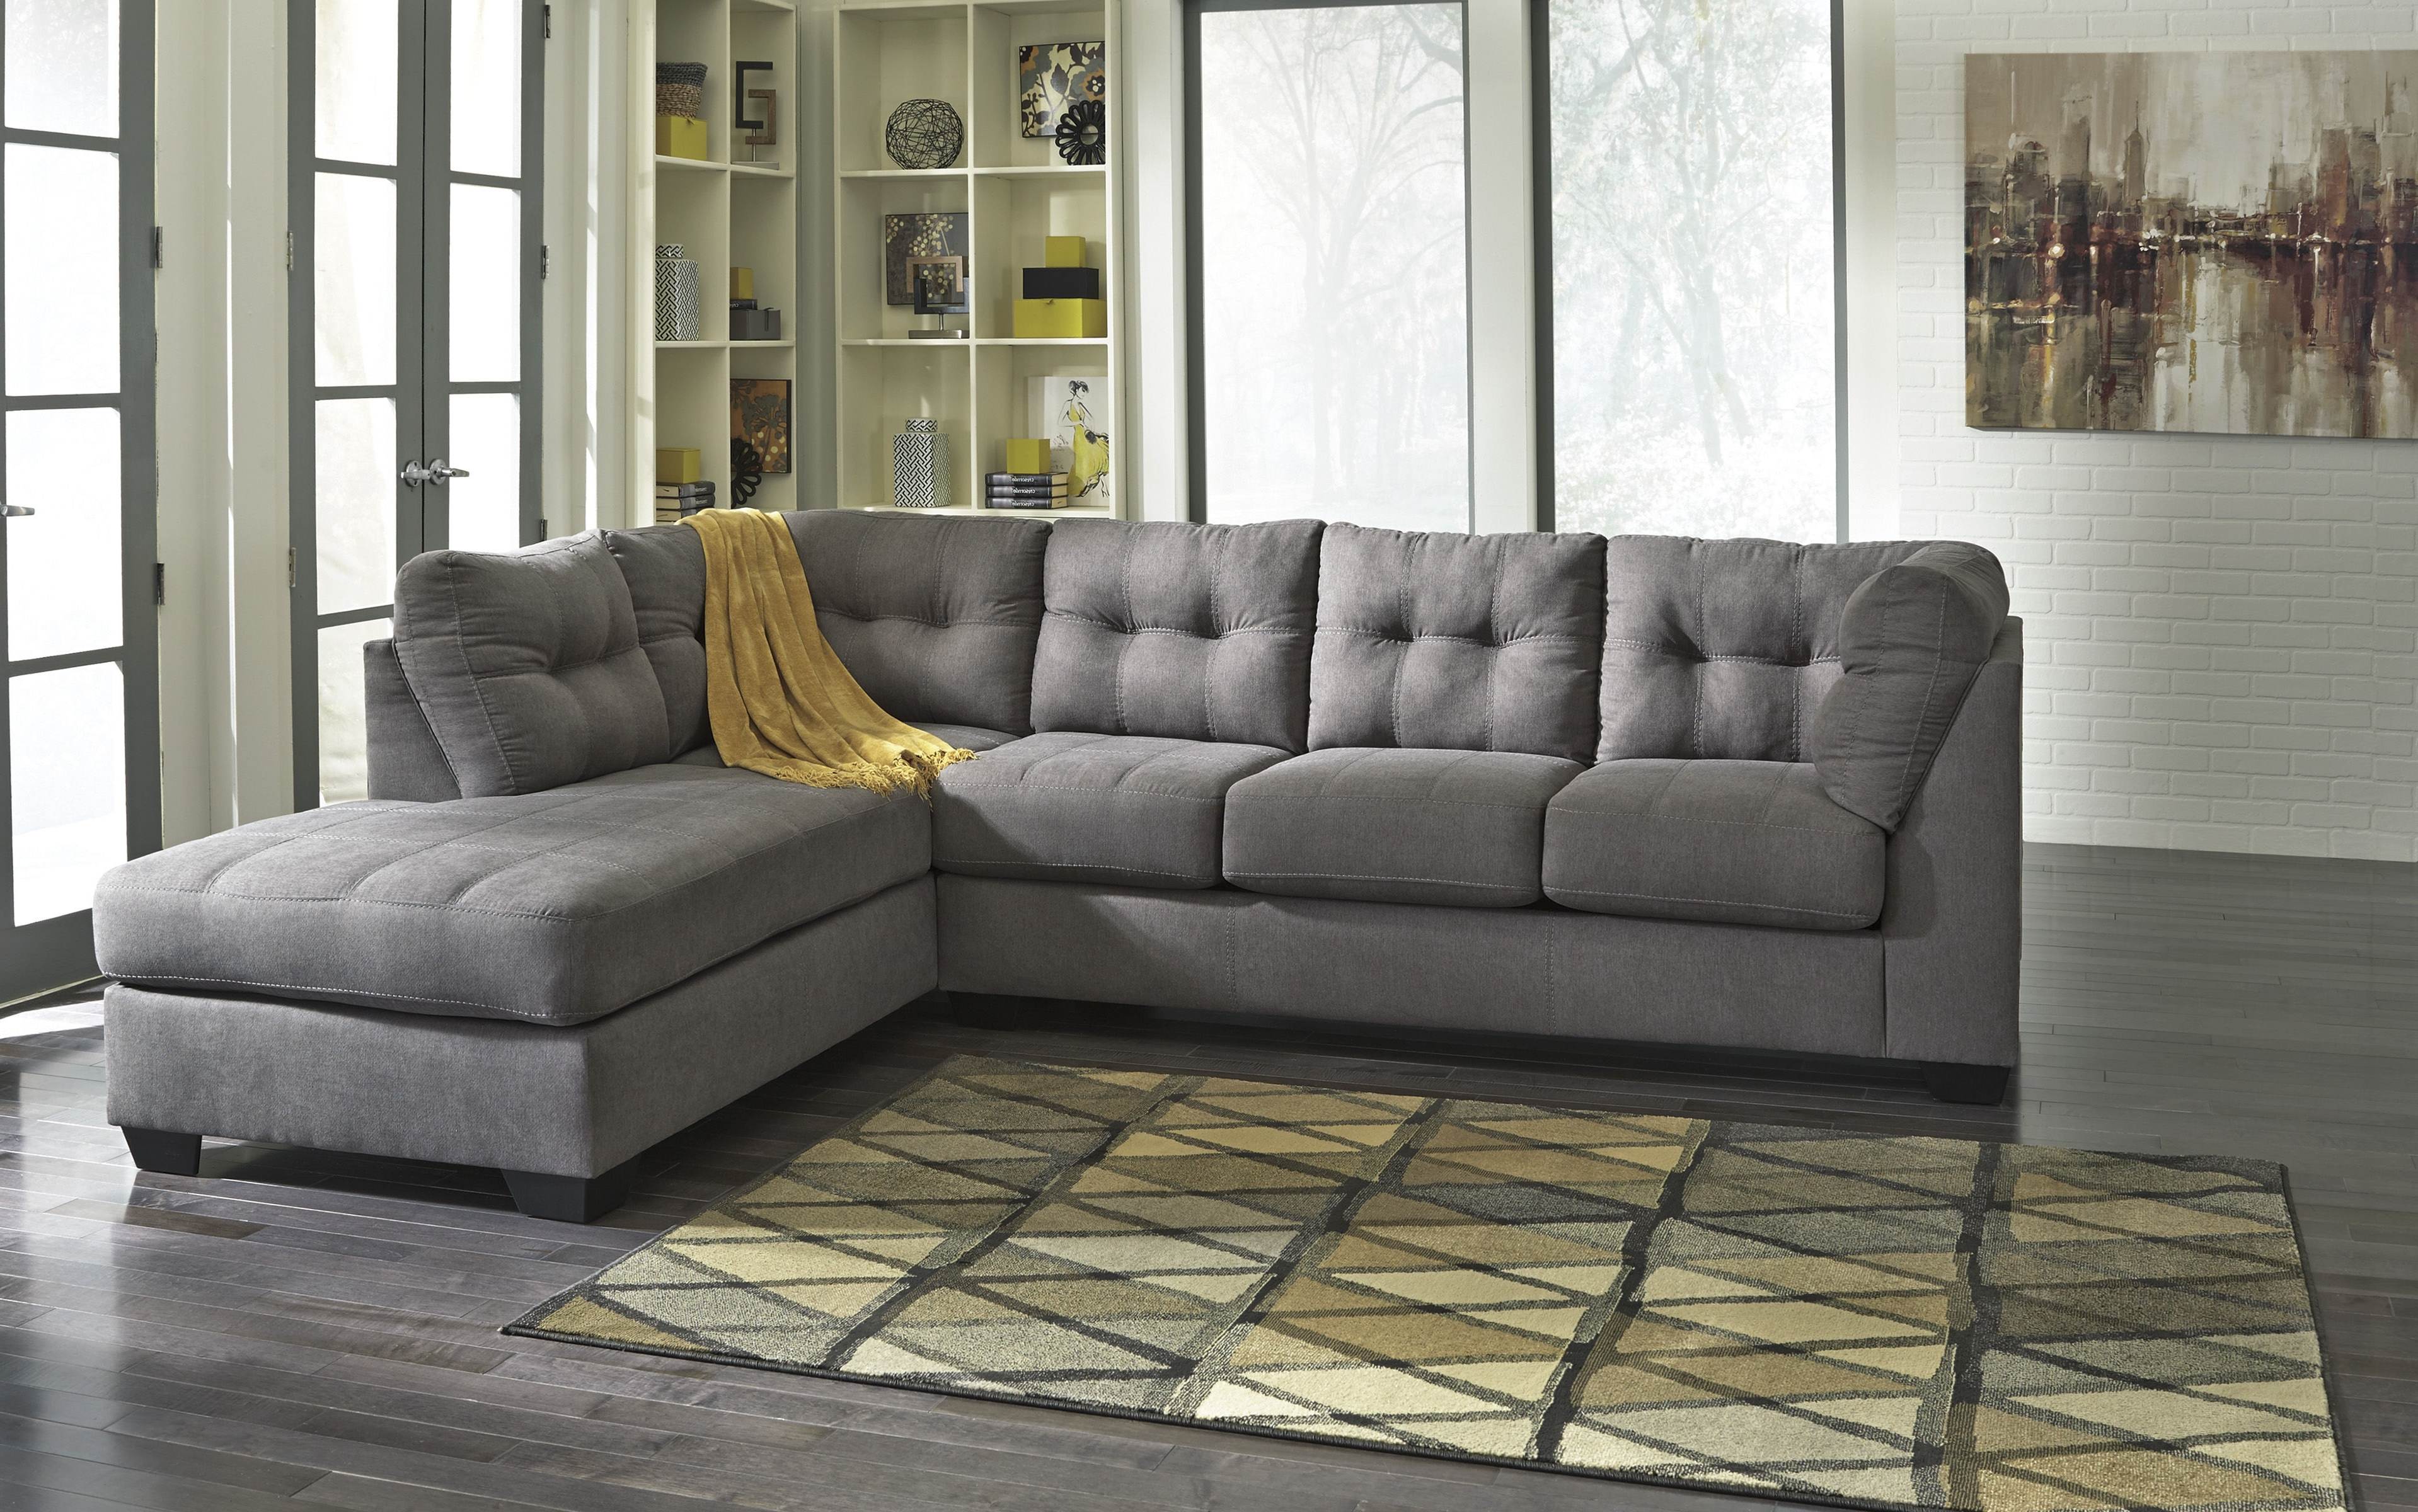 Ashley Furniture Maier Charcoal Raf Chaise Sectional (View 5 of 15)